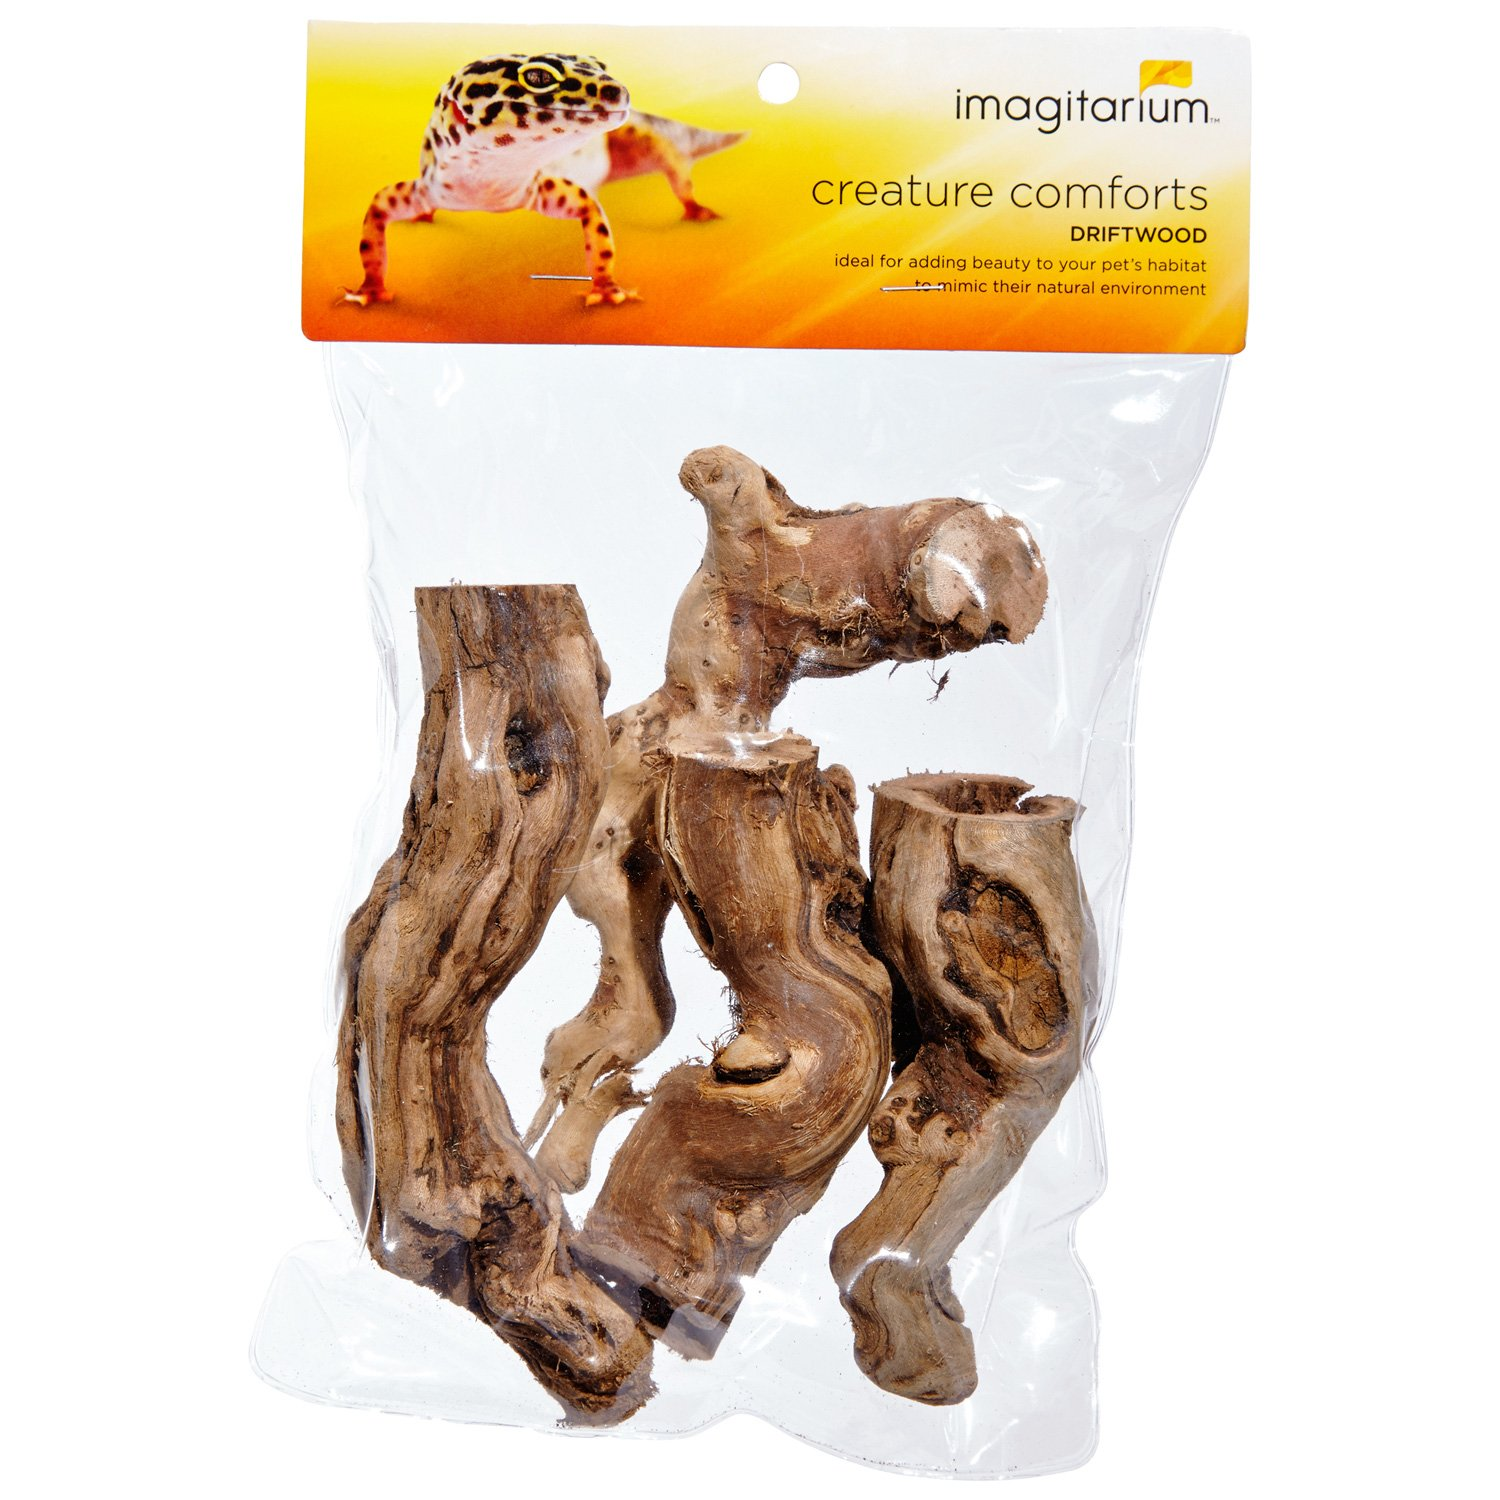 Imagitarium Multi-pack Driftwood